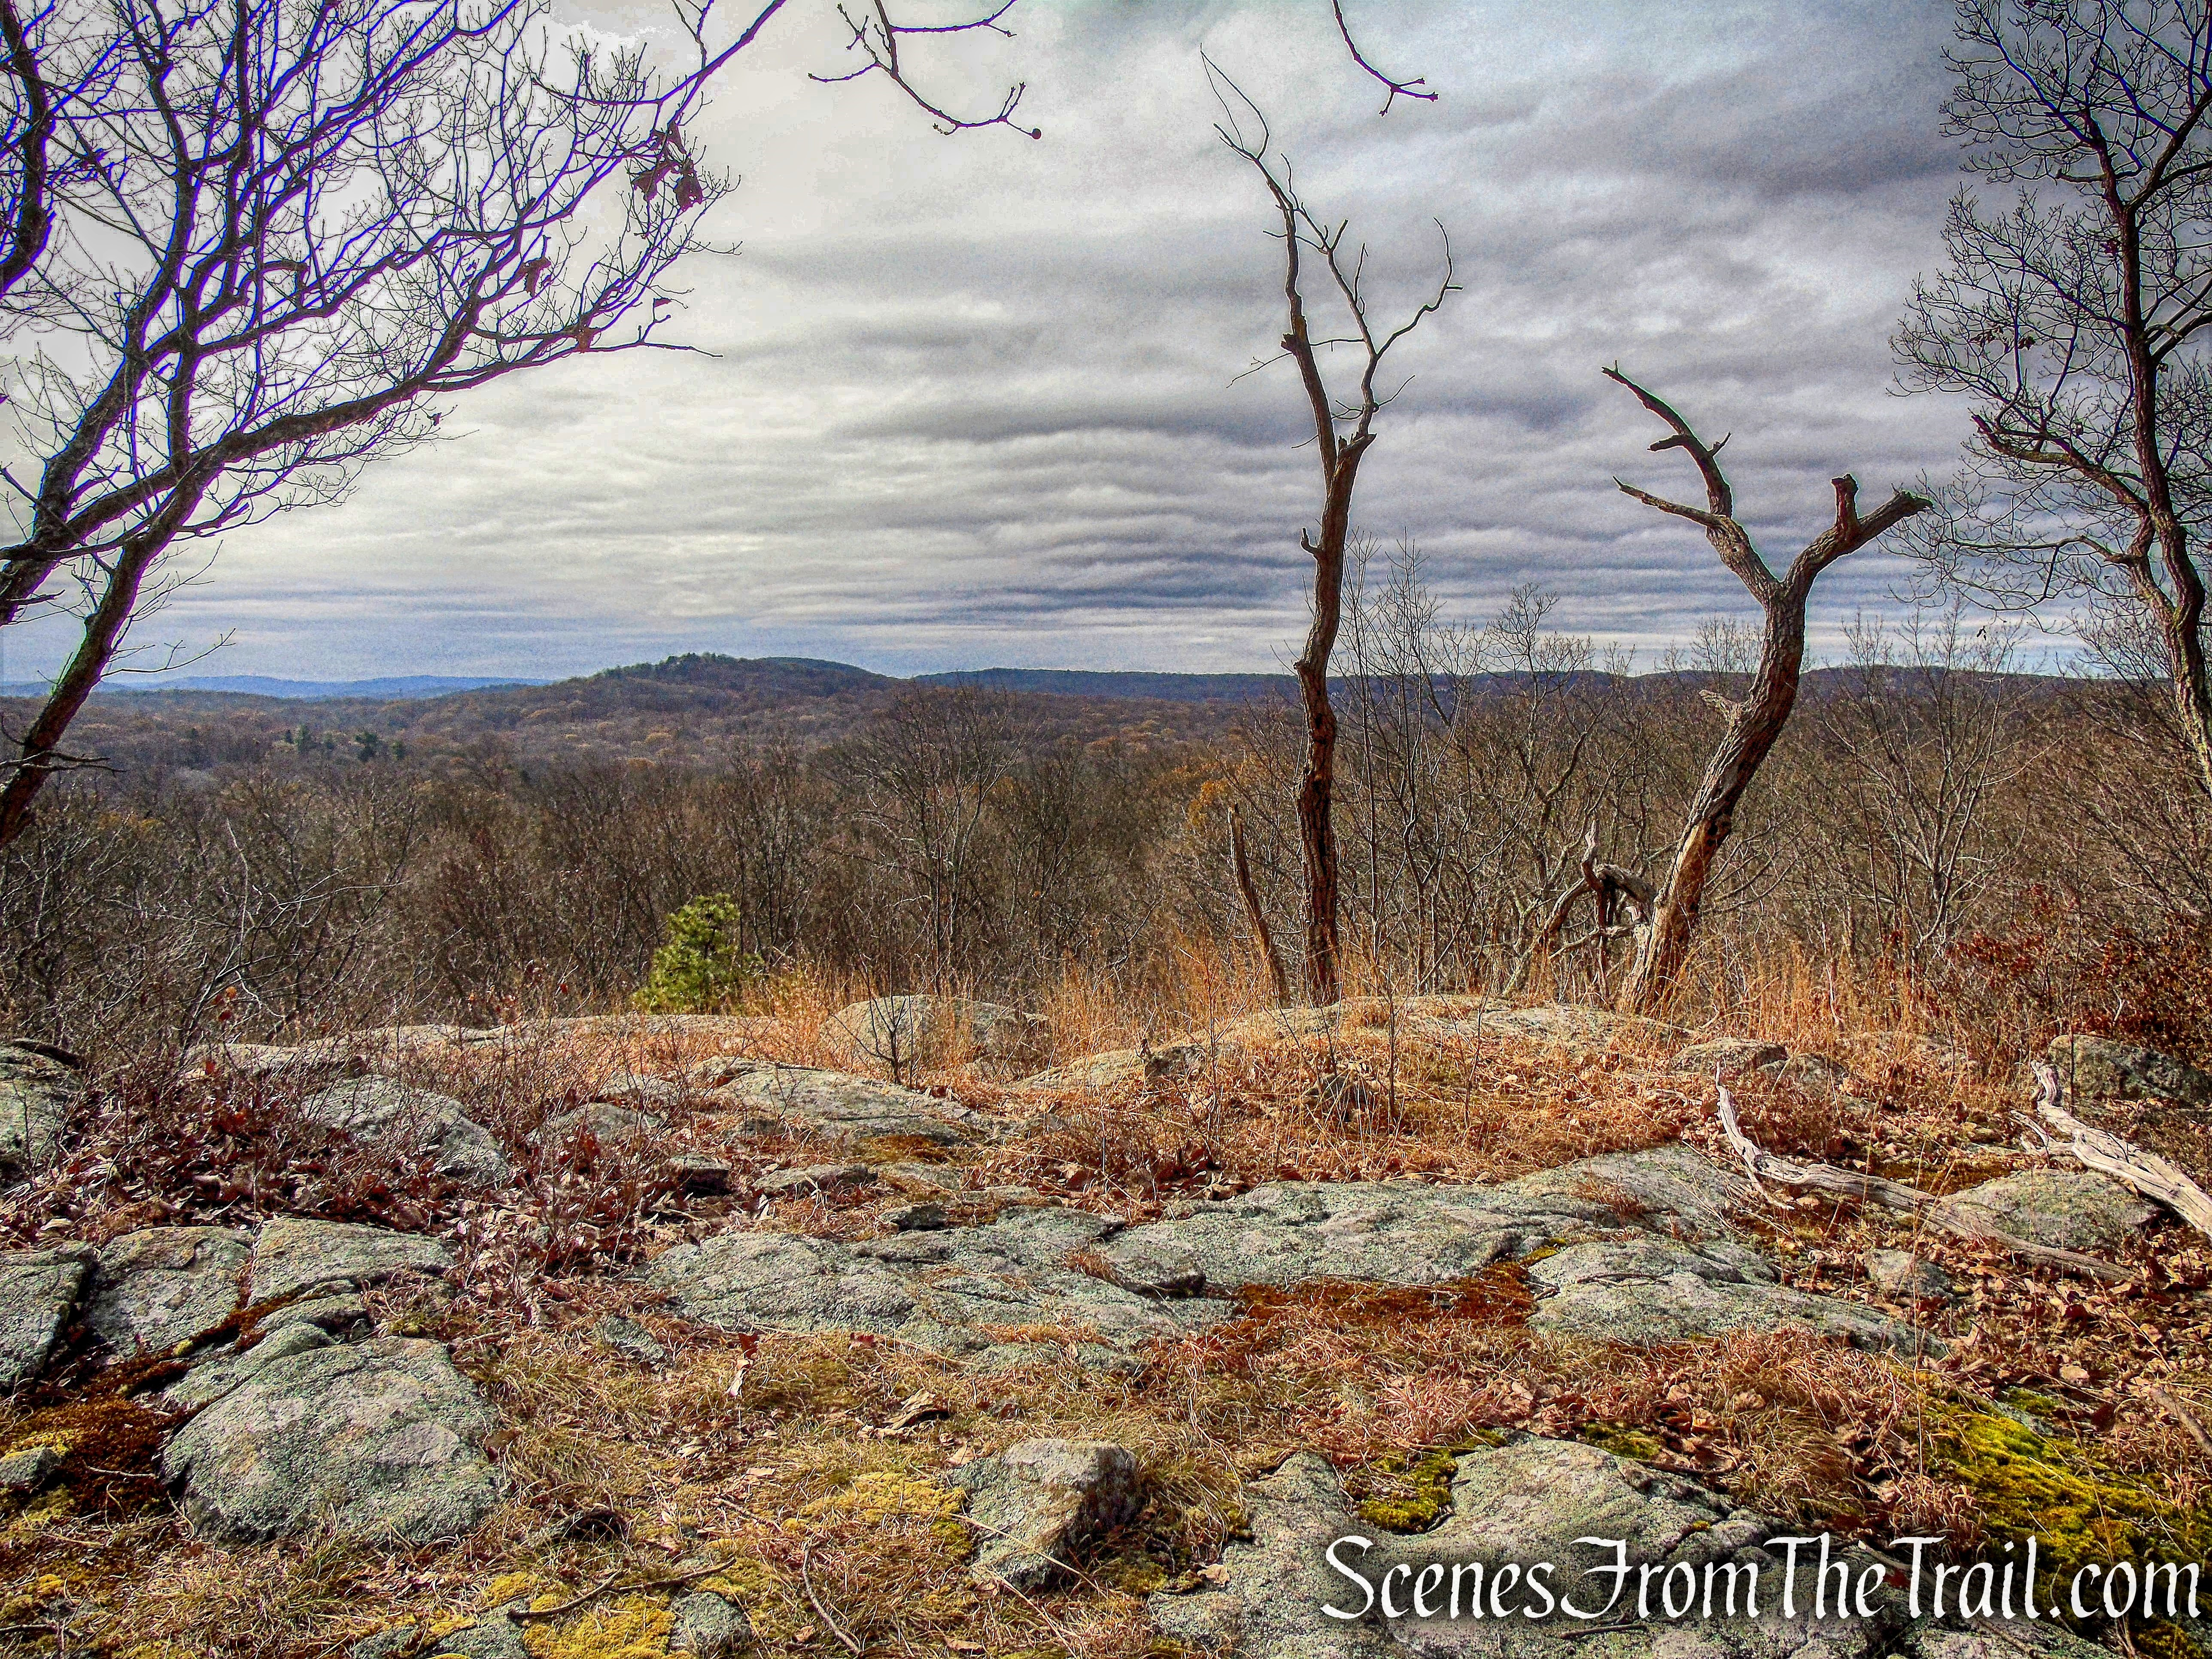 Scenic Overlook - White Trail - Silas Condict County Park